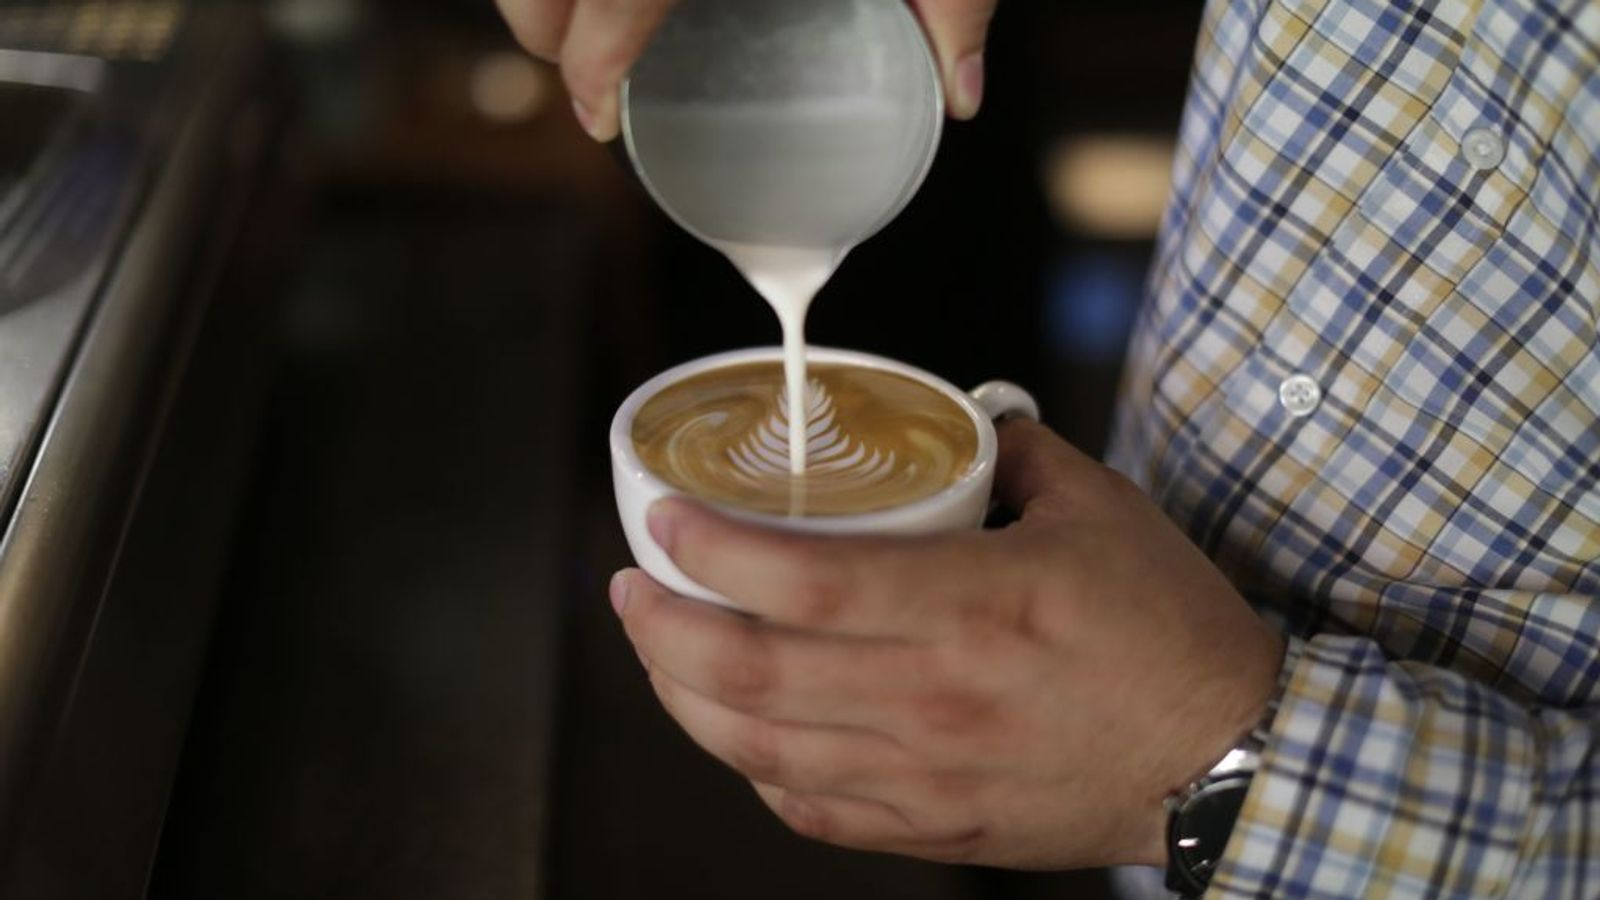 Italian woman jailed after drugging her co-worker's coffee for nine months